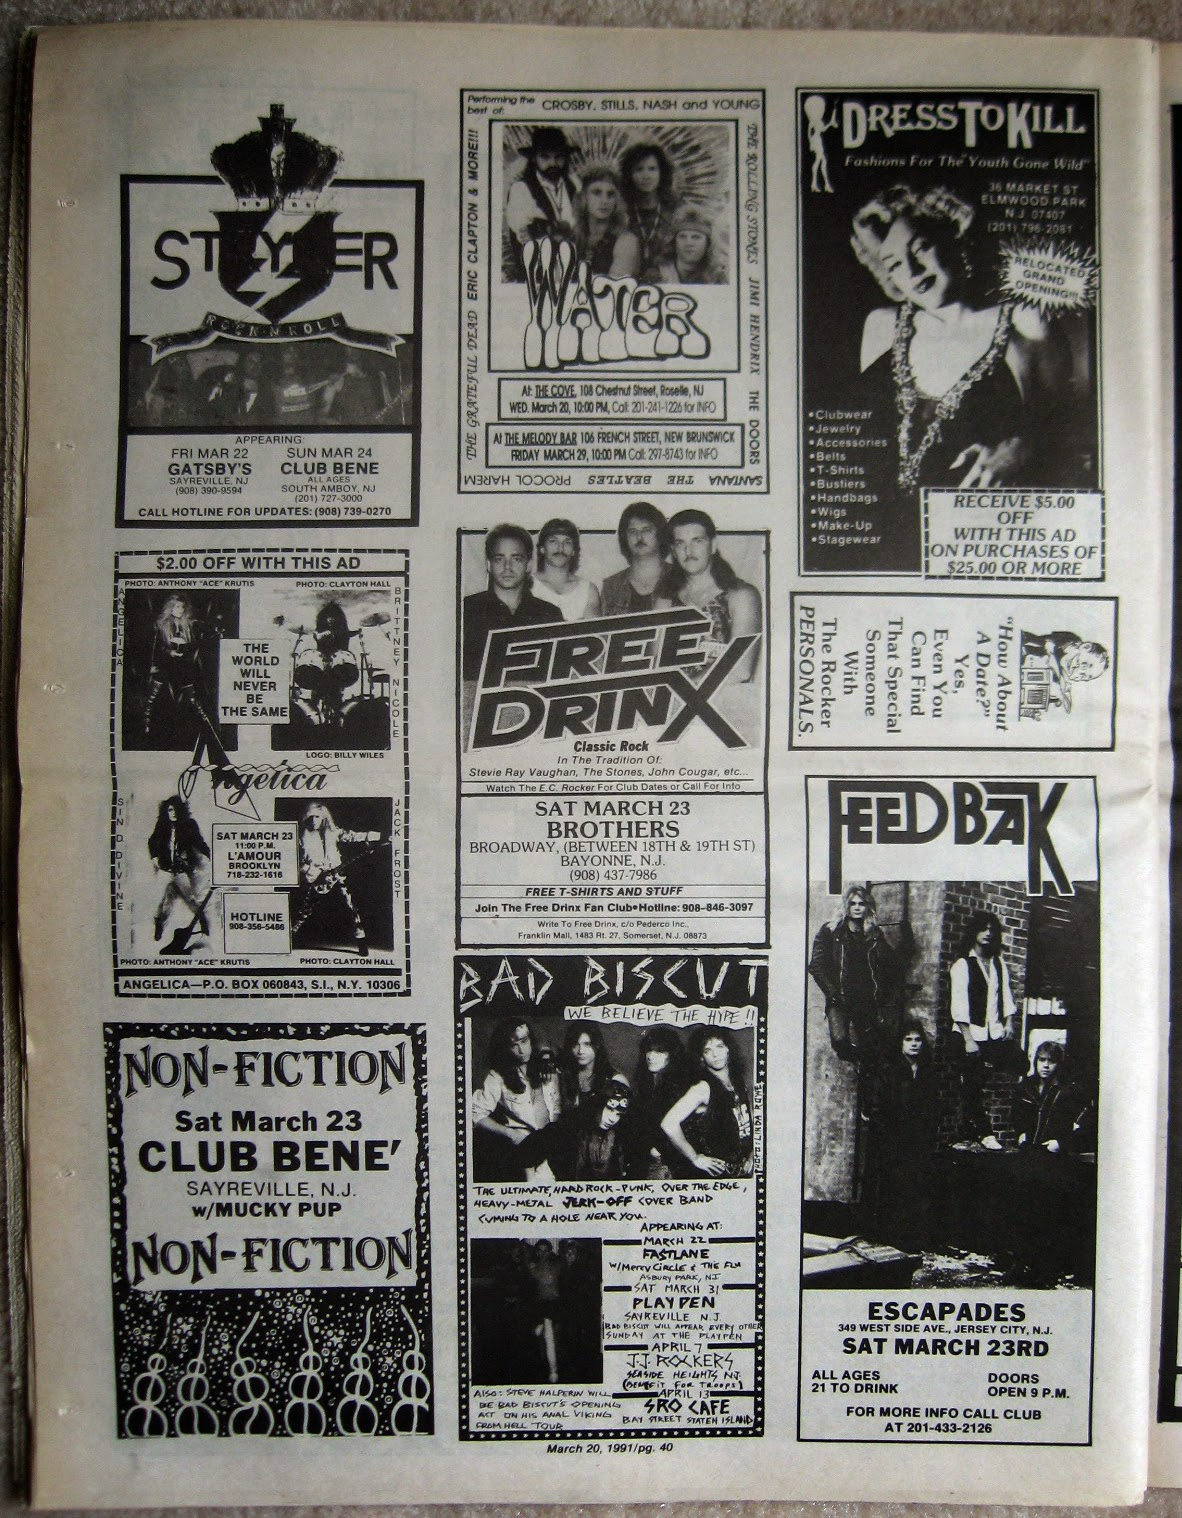 Stryker - Water - Angelica - Free Drinx - Feed Back - Non-Fiction club line up 1991